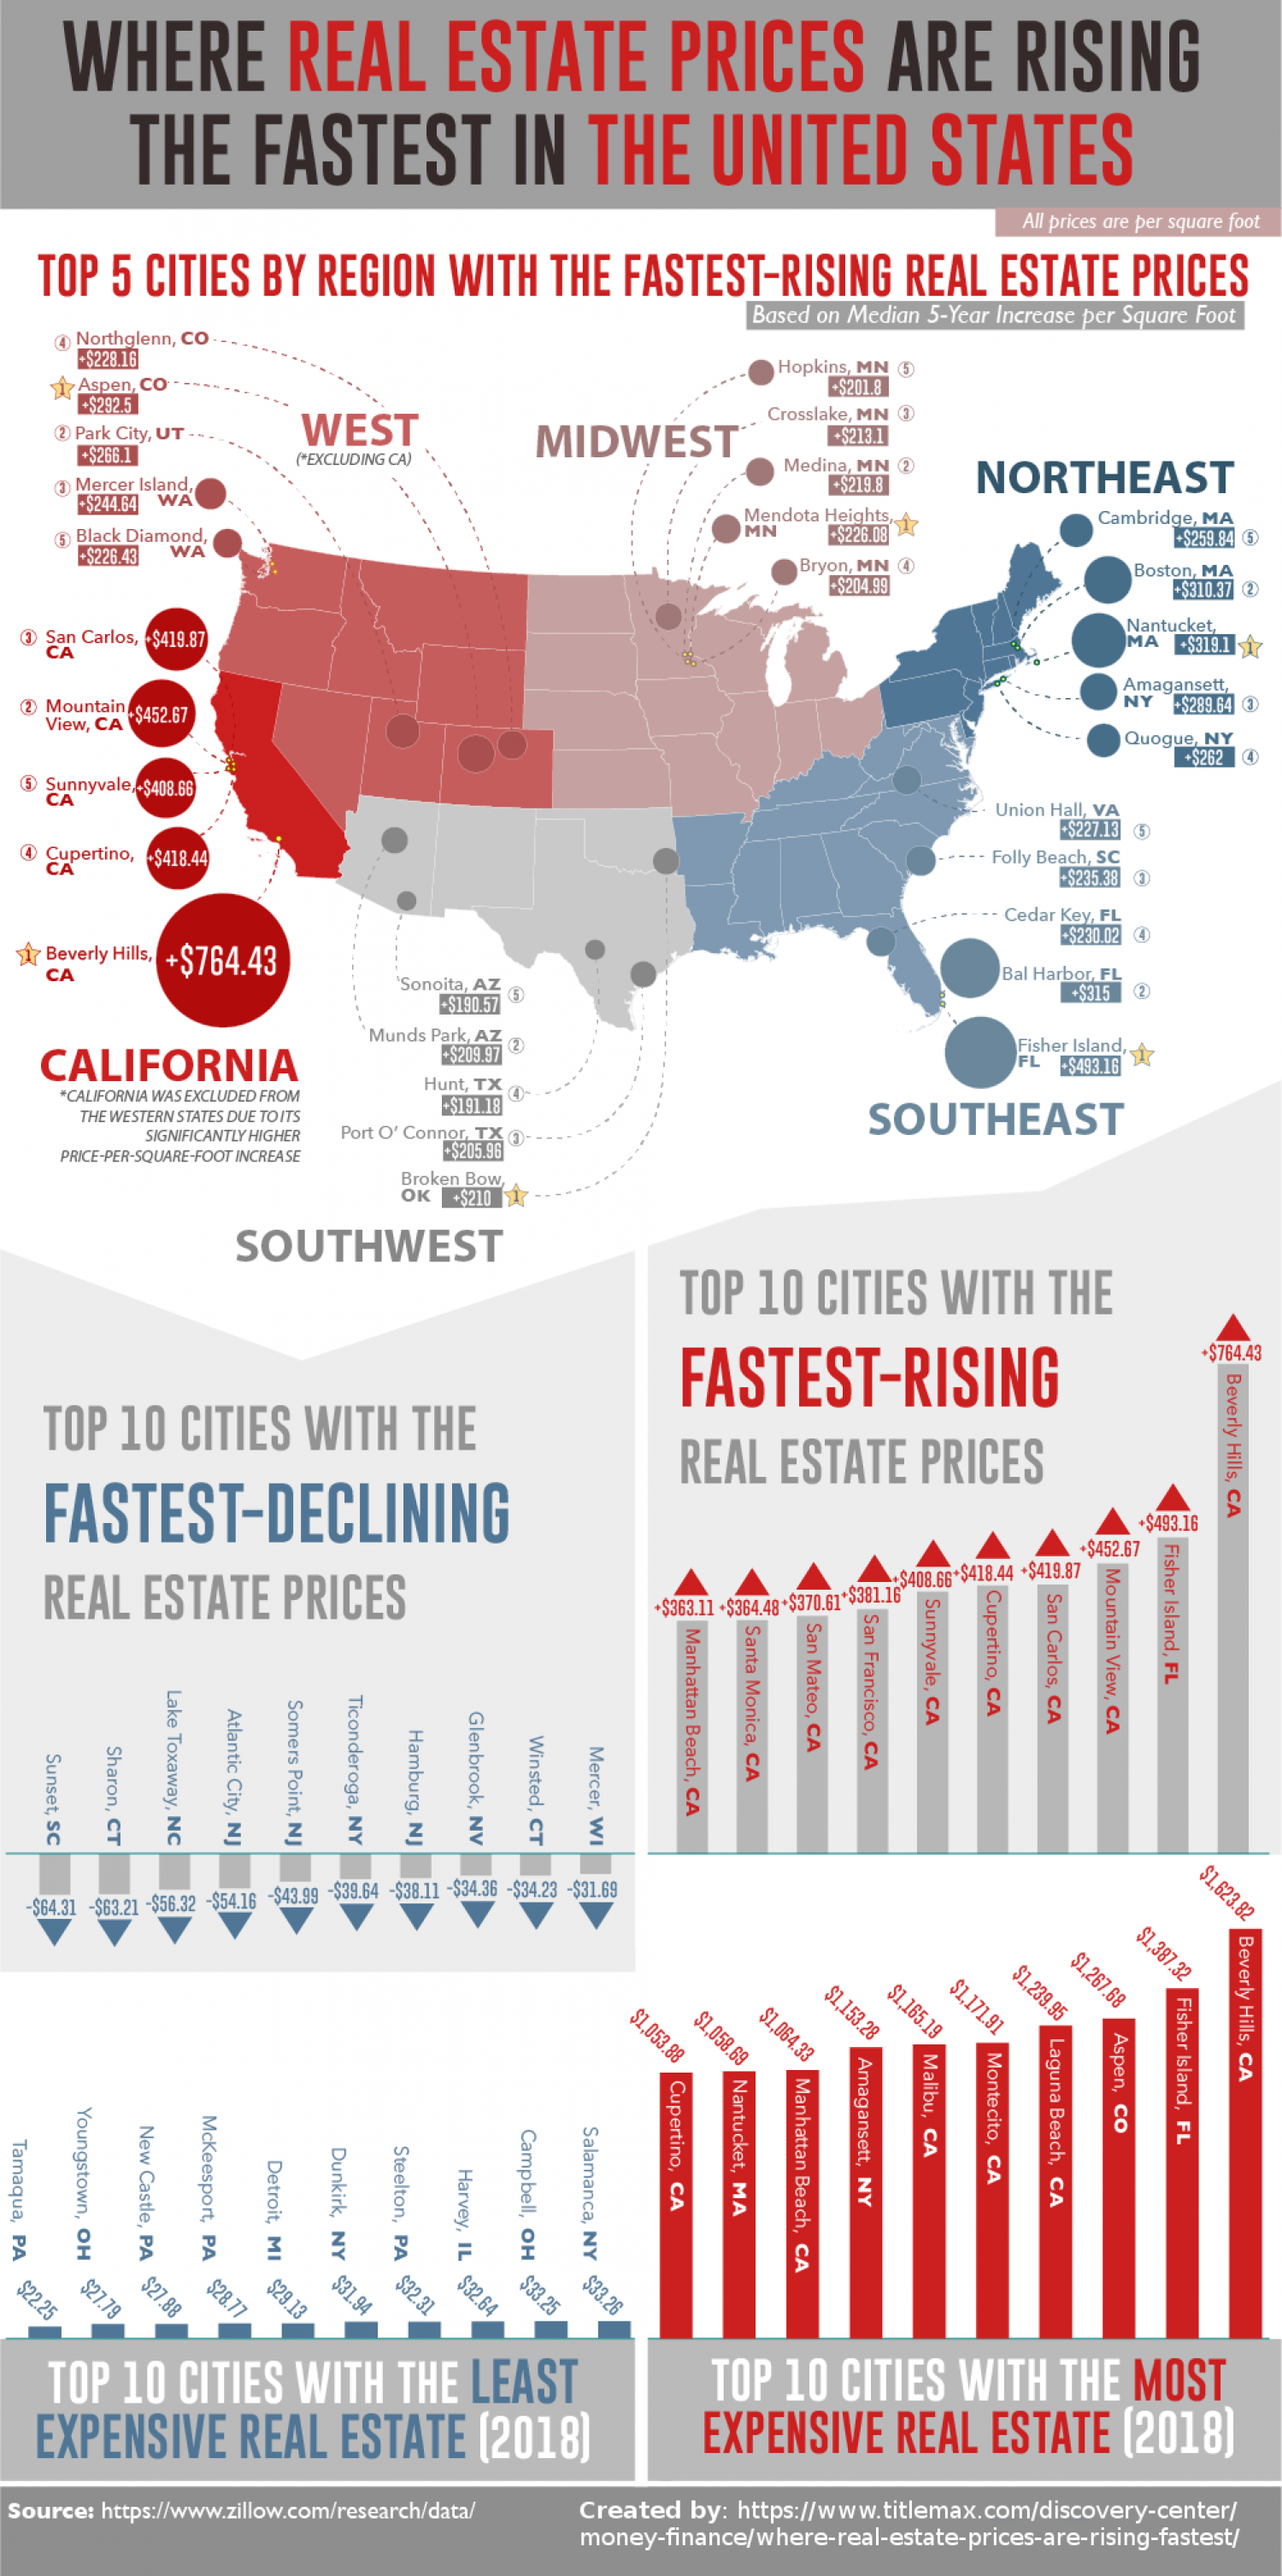 Where Real Estate Prices Are Rising the Fastest in the United States Infographic